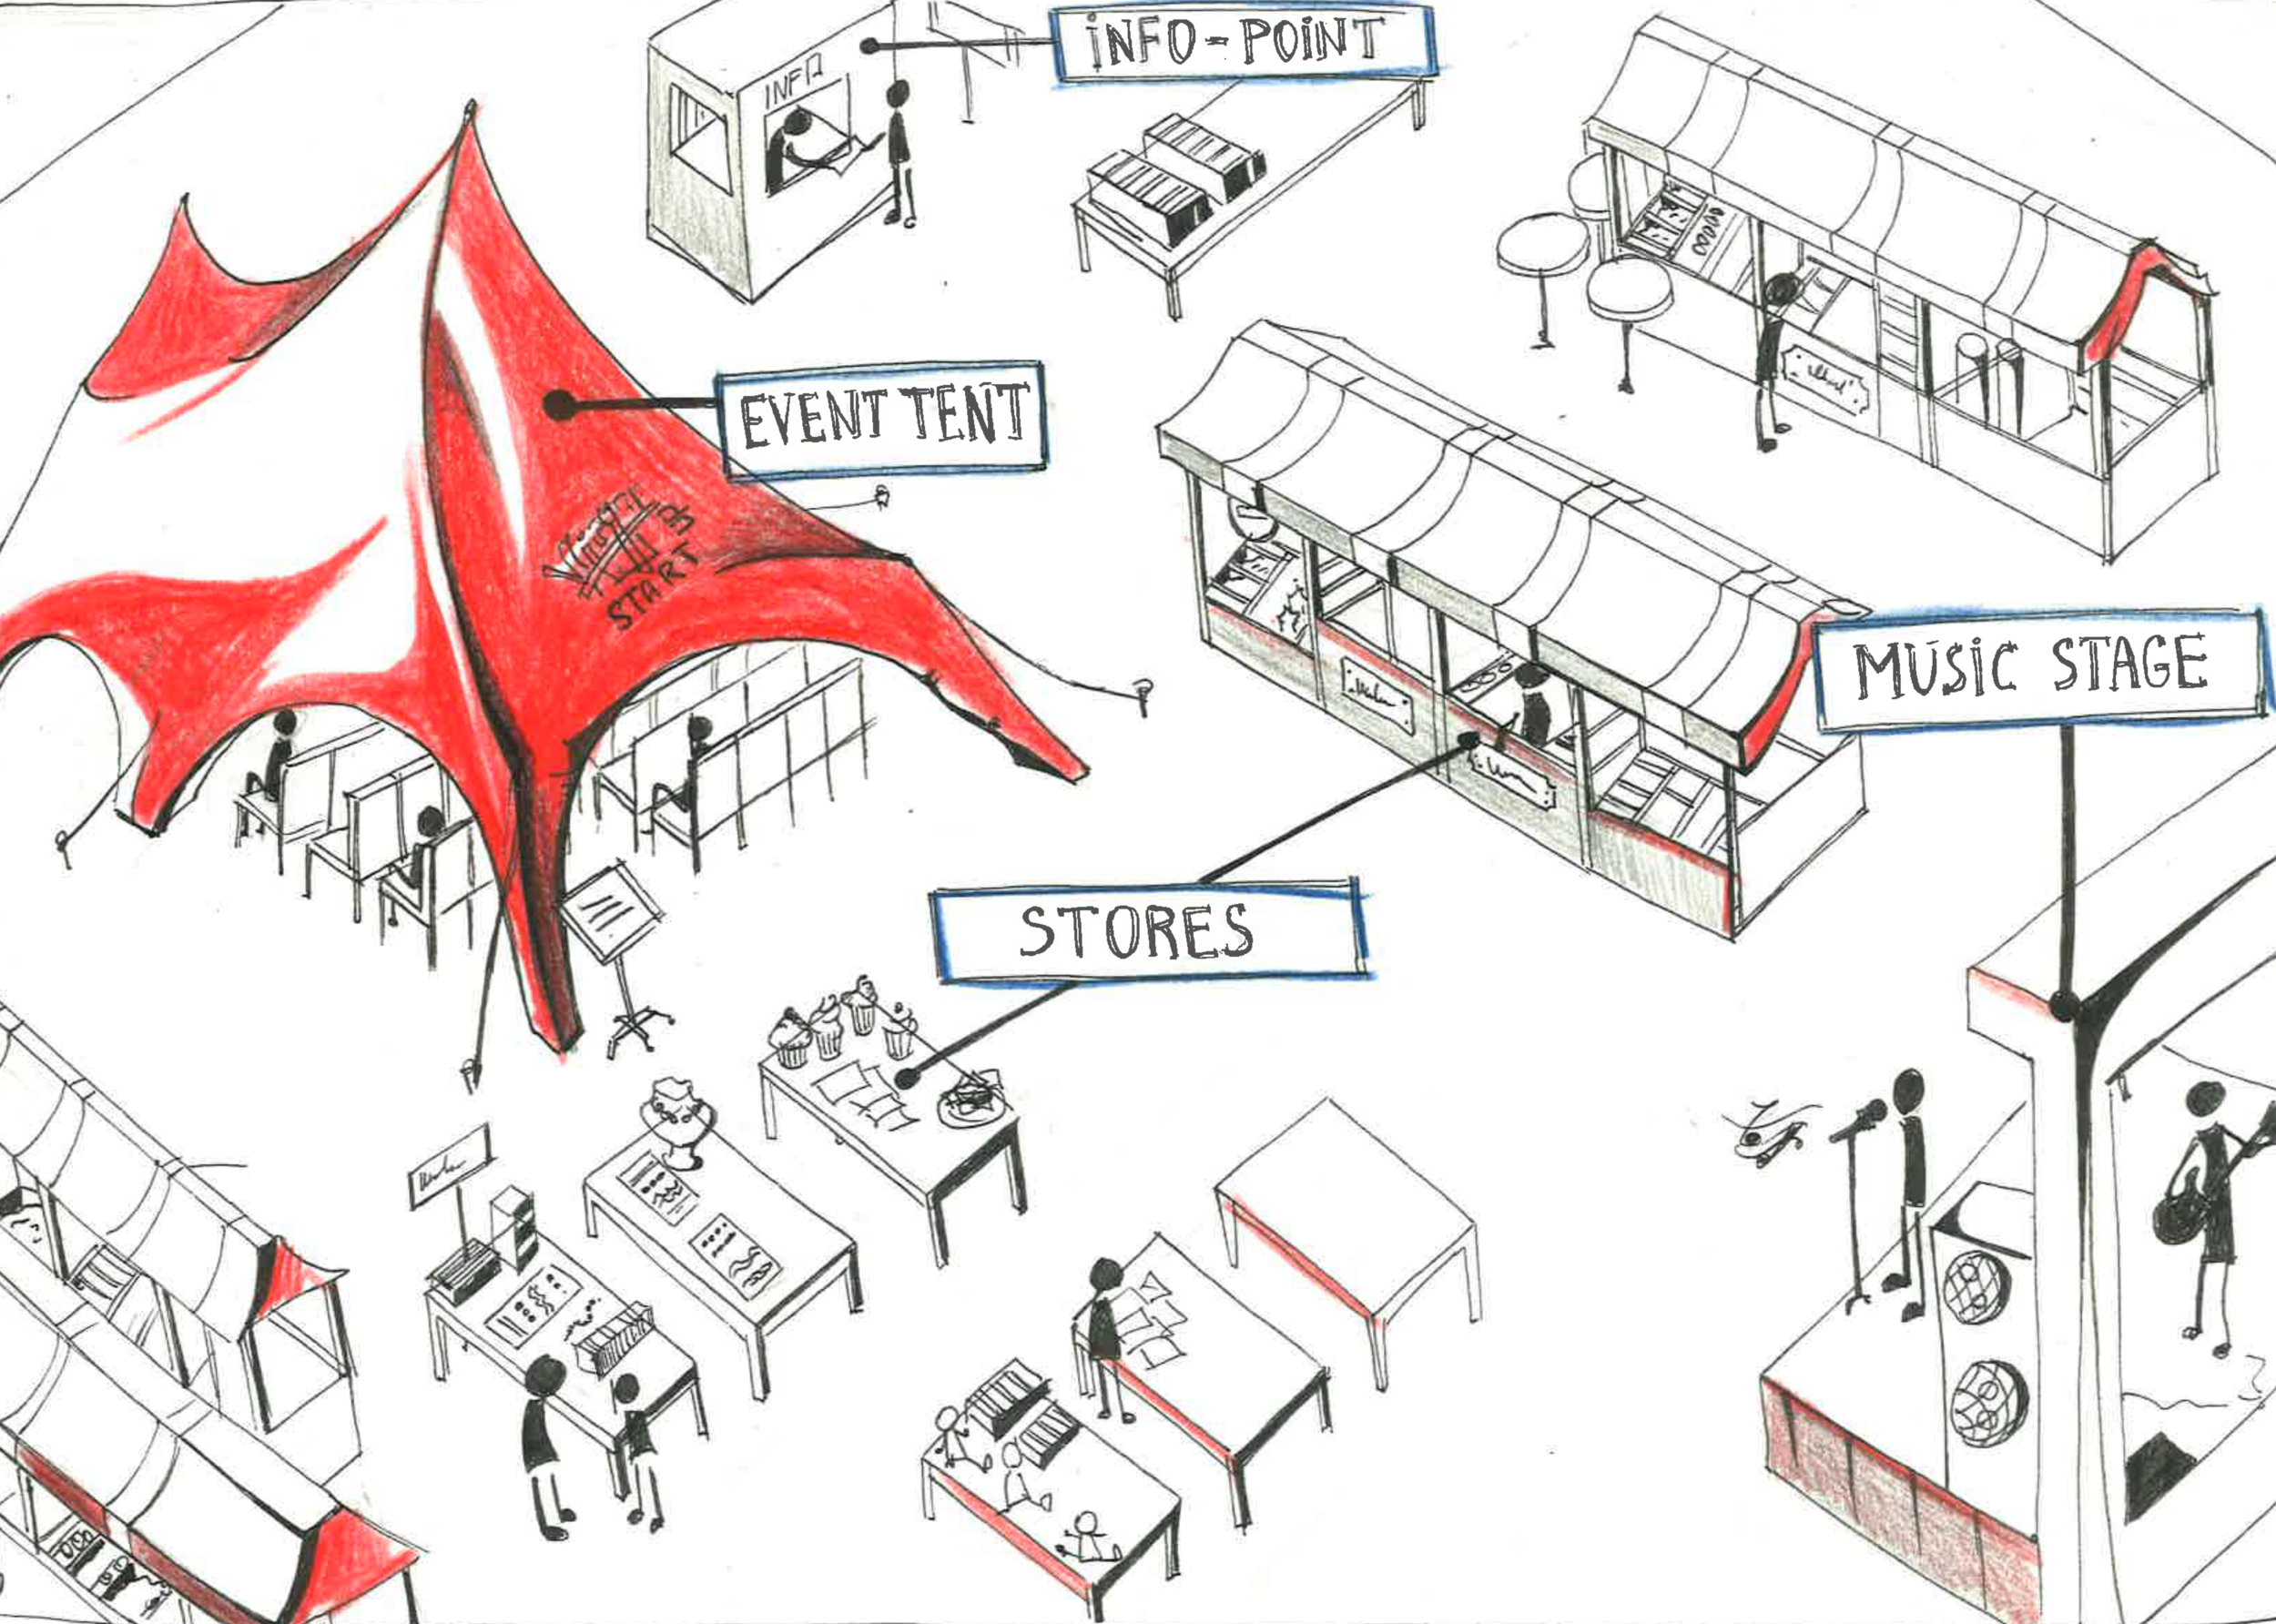 - Mock up over view of the exhibition stands to be held within the event area.